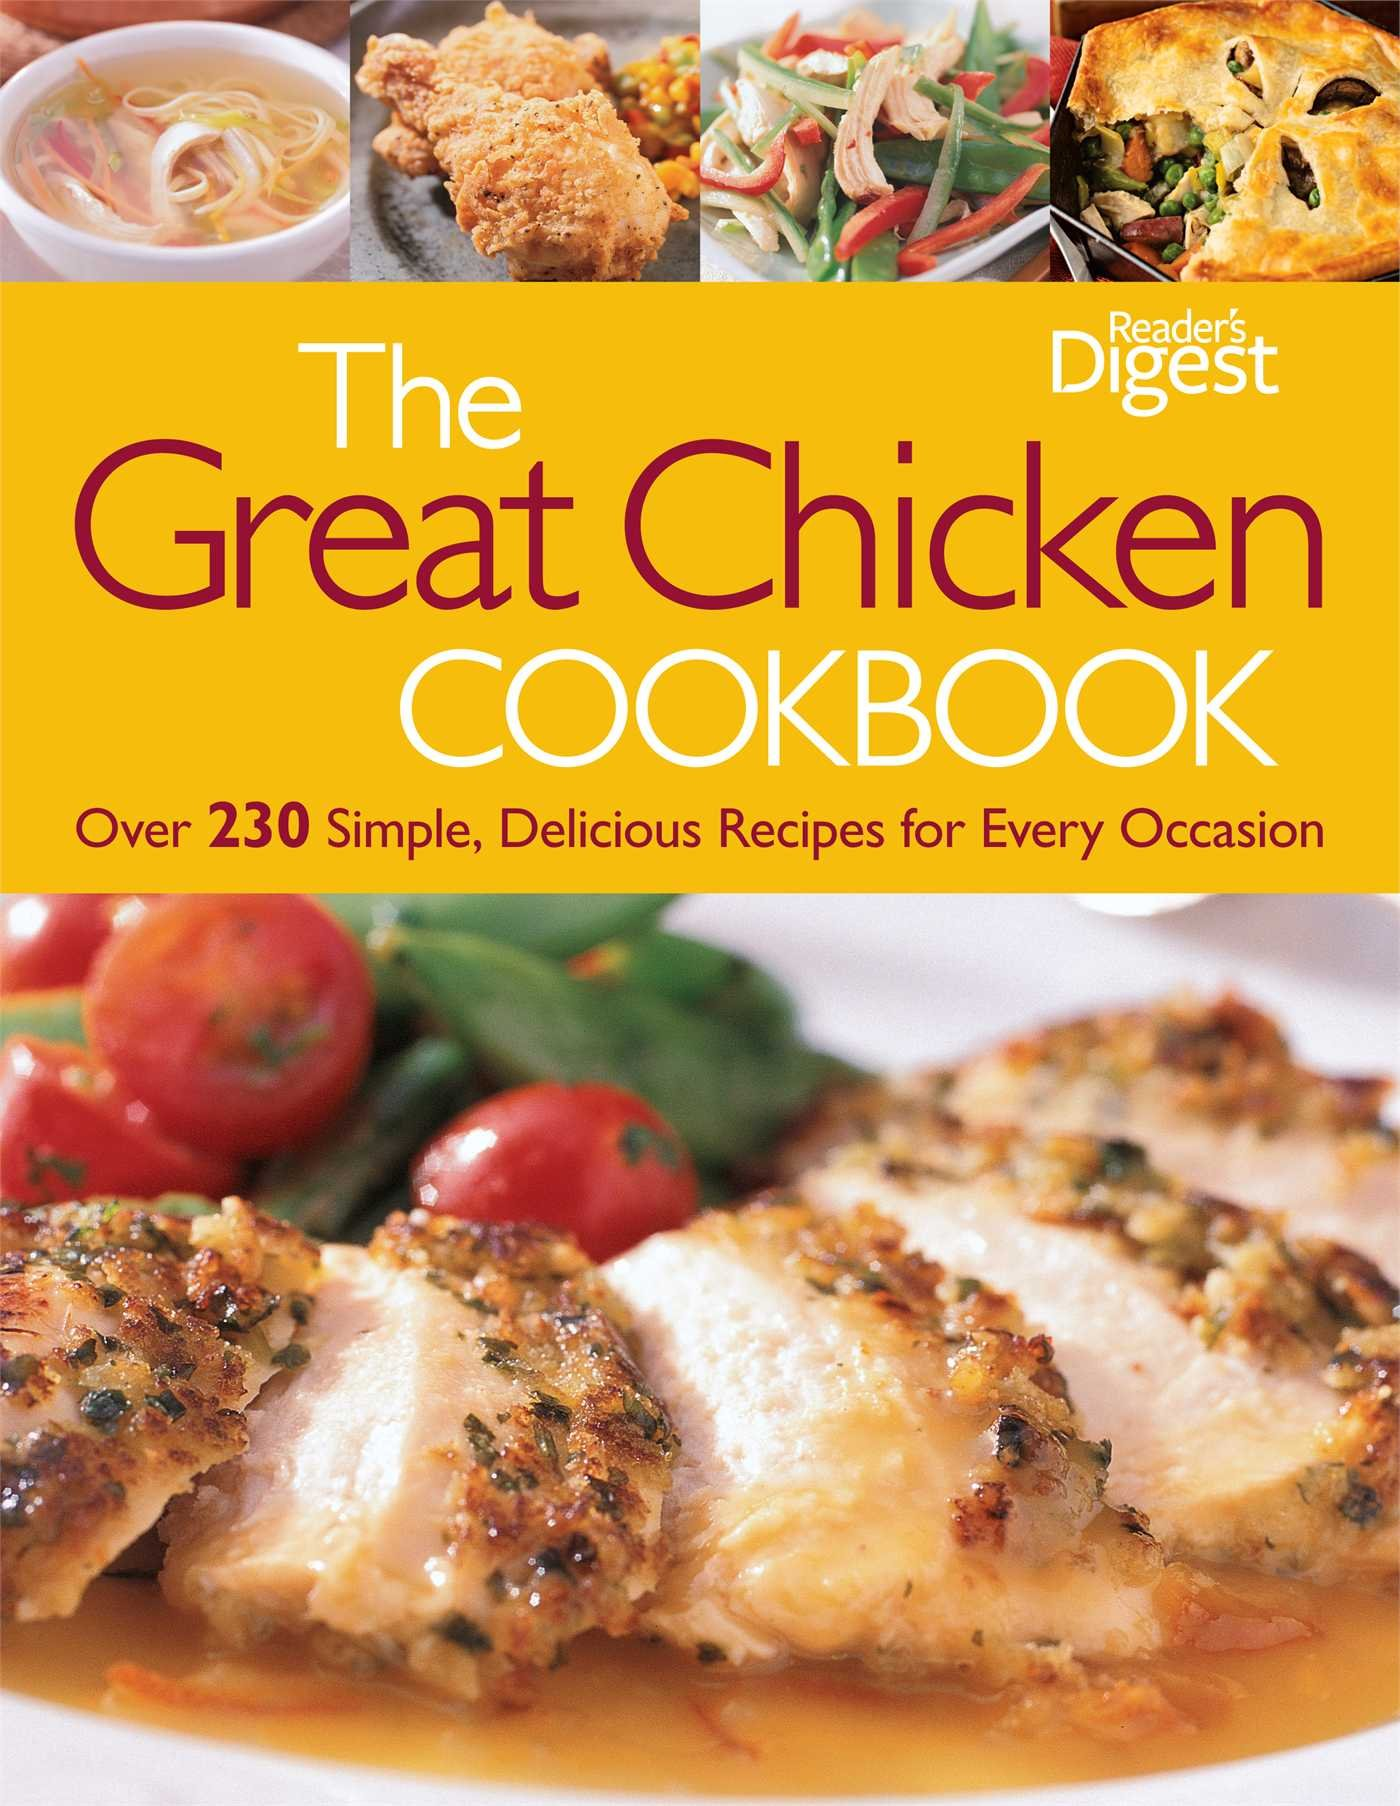 The great chicken cookbook over 230 simple delicious recipes for the great chicken cookbook over 230 simple delicious recipes for every occasion editors of readers digest 9781606523339 amazon books forumfinder Images